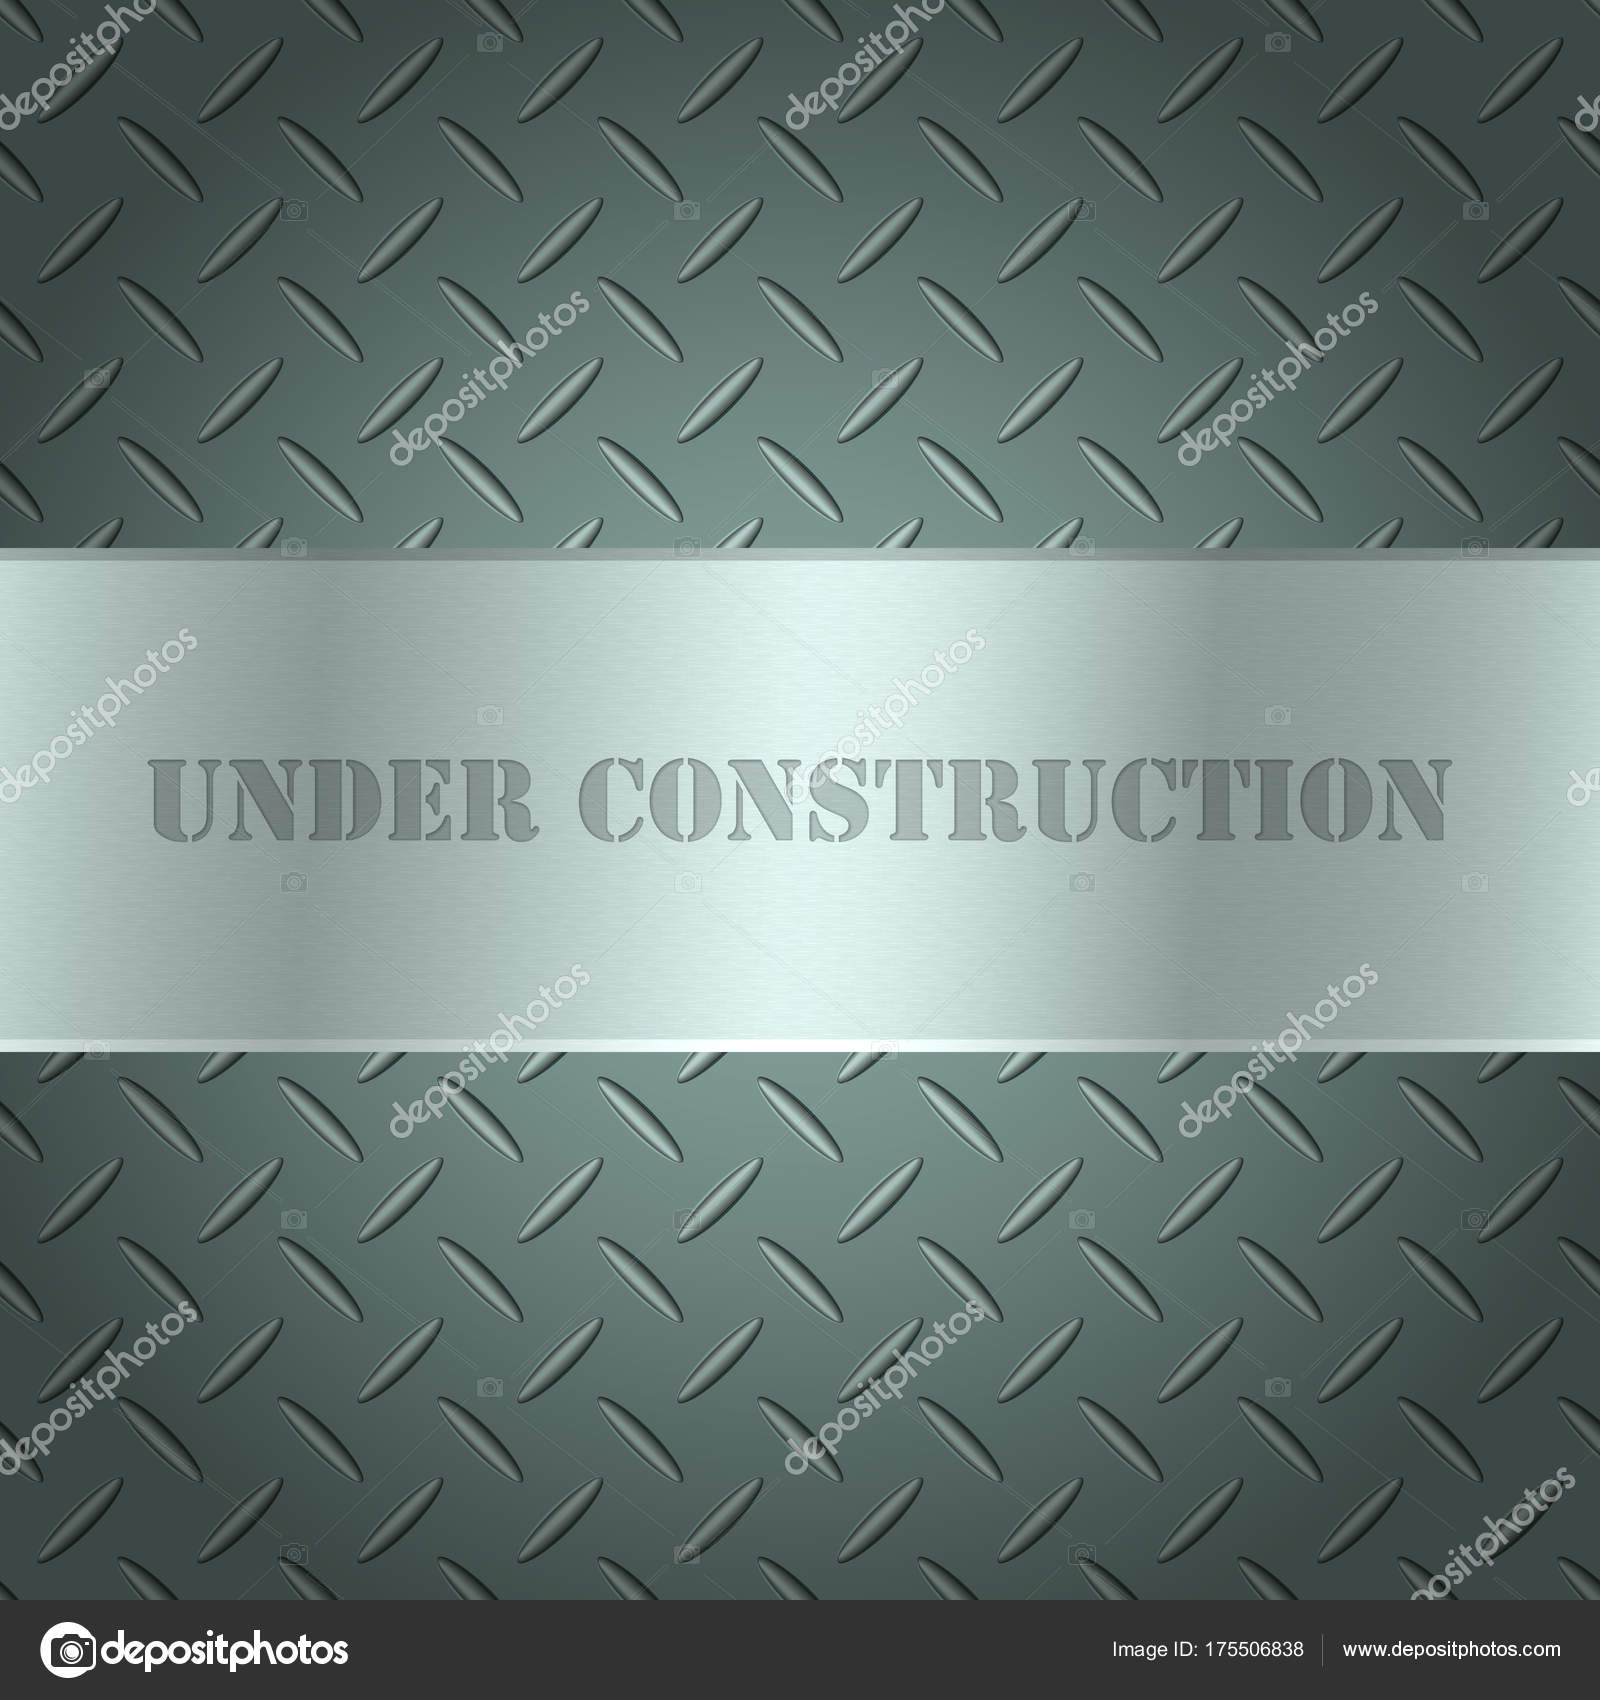 Metallic background with tread plate texture and steel textured ...